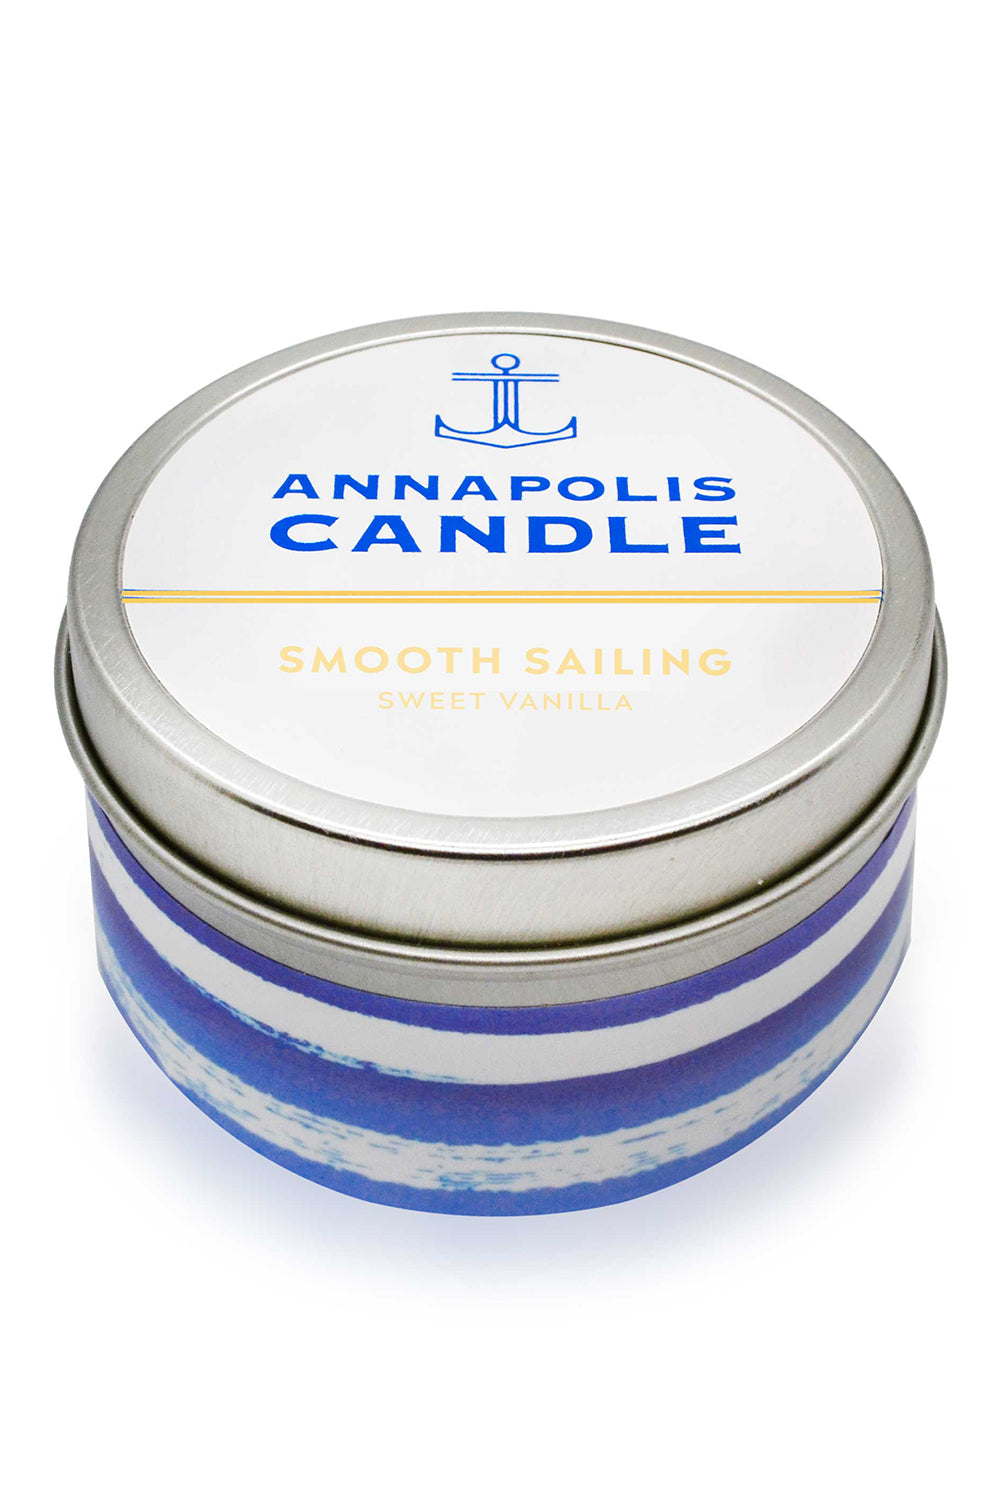 *NEW* Tin Annapolis Candle - Smooth Sailing